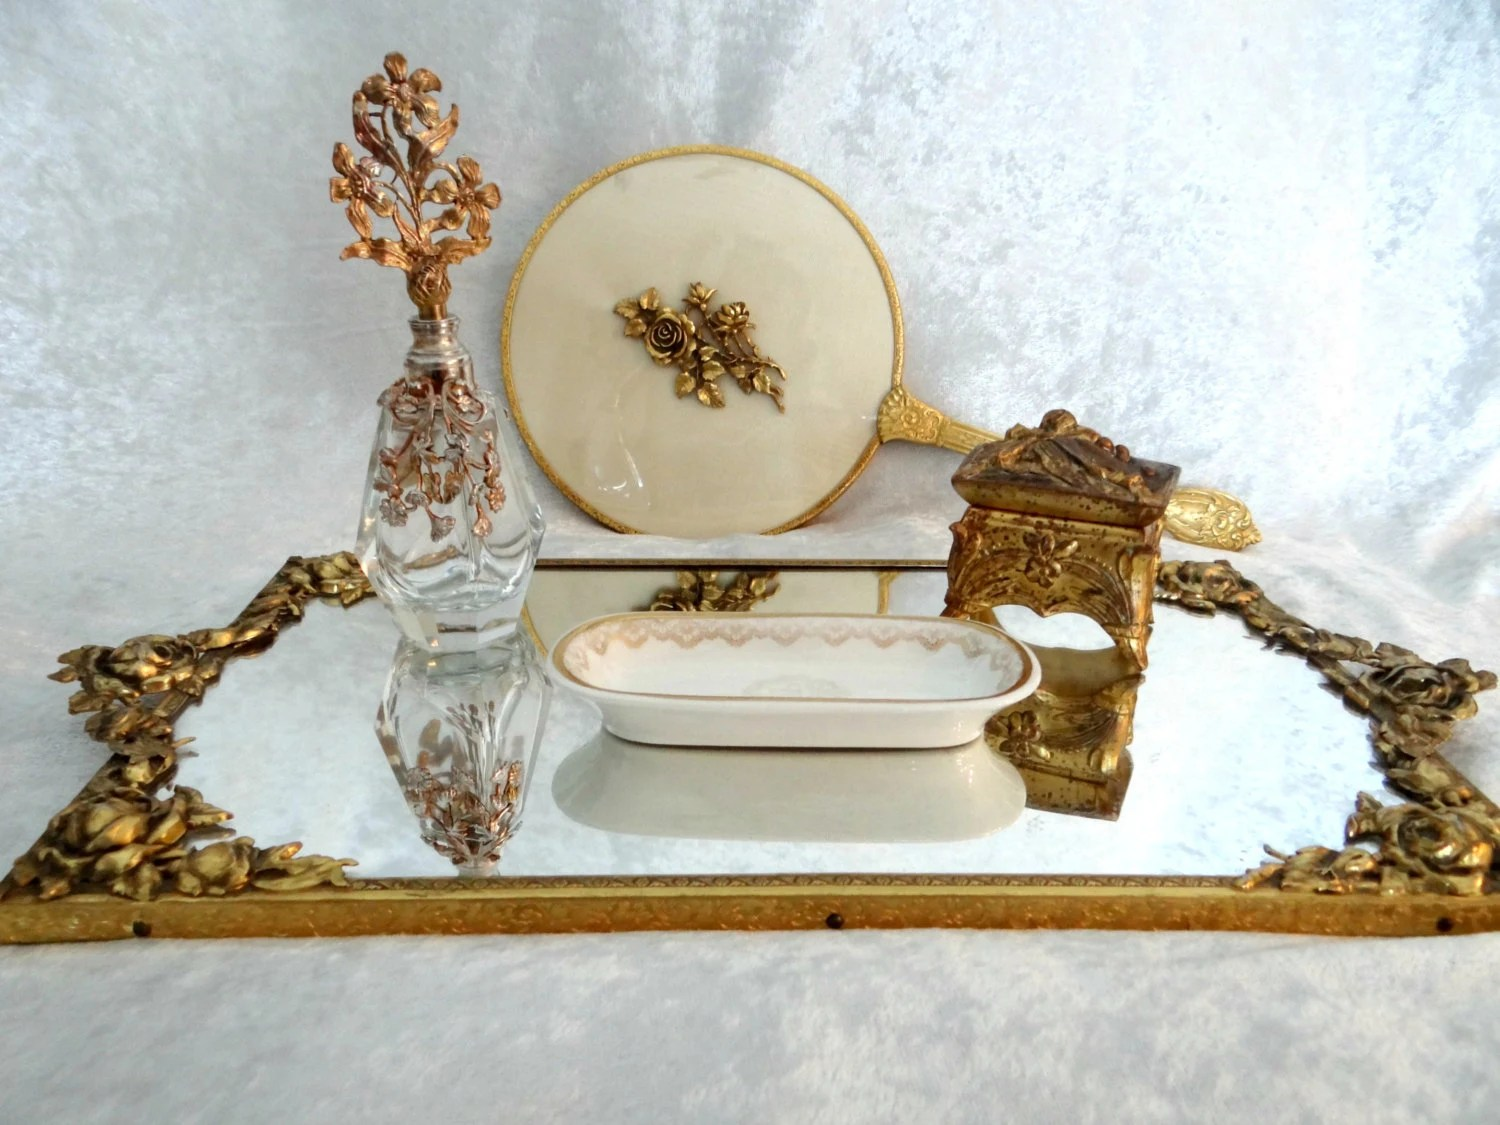 Vintage Ornate Gold Dresser Pieces Gold Mirrored Tray Hand